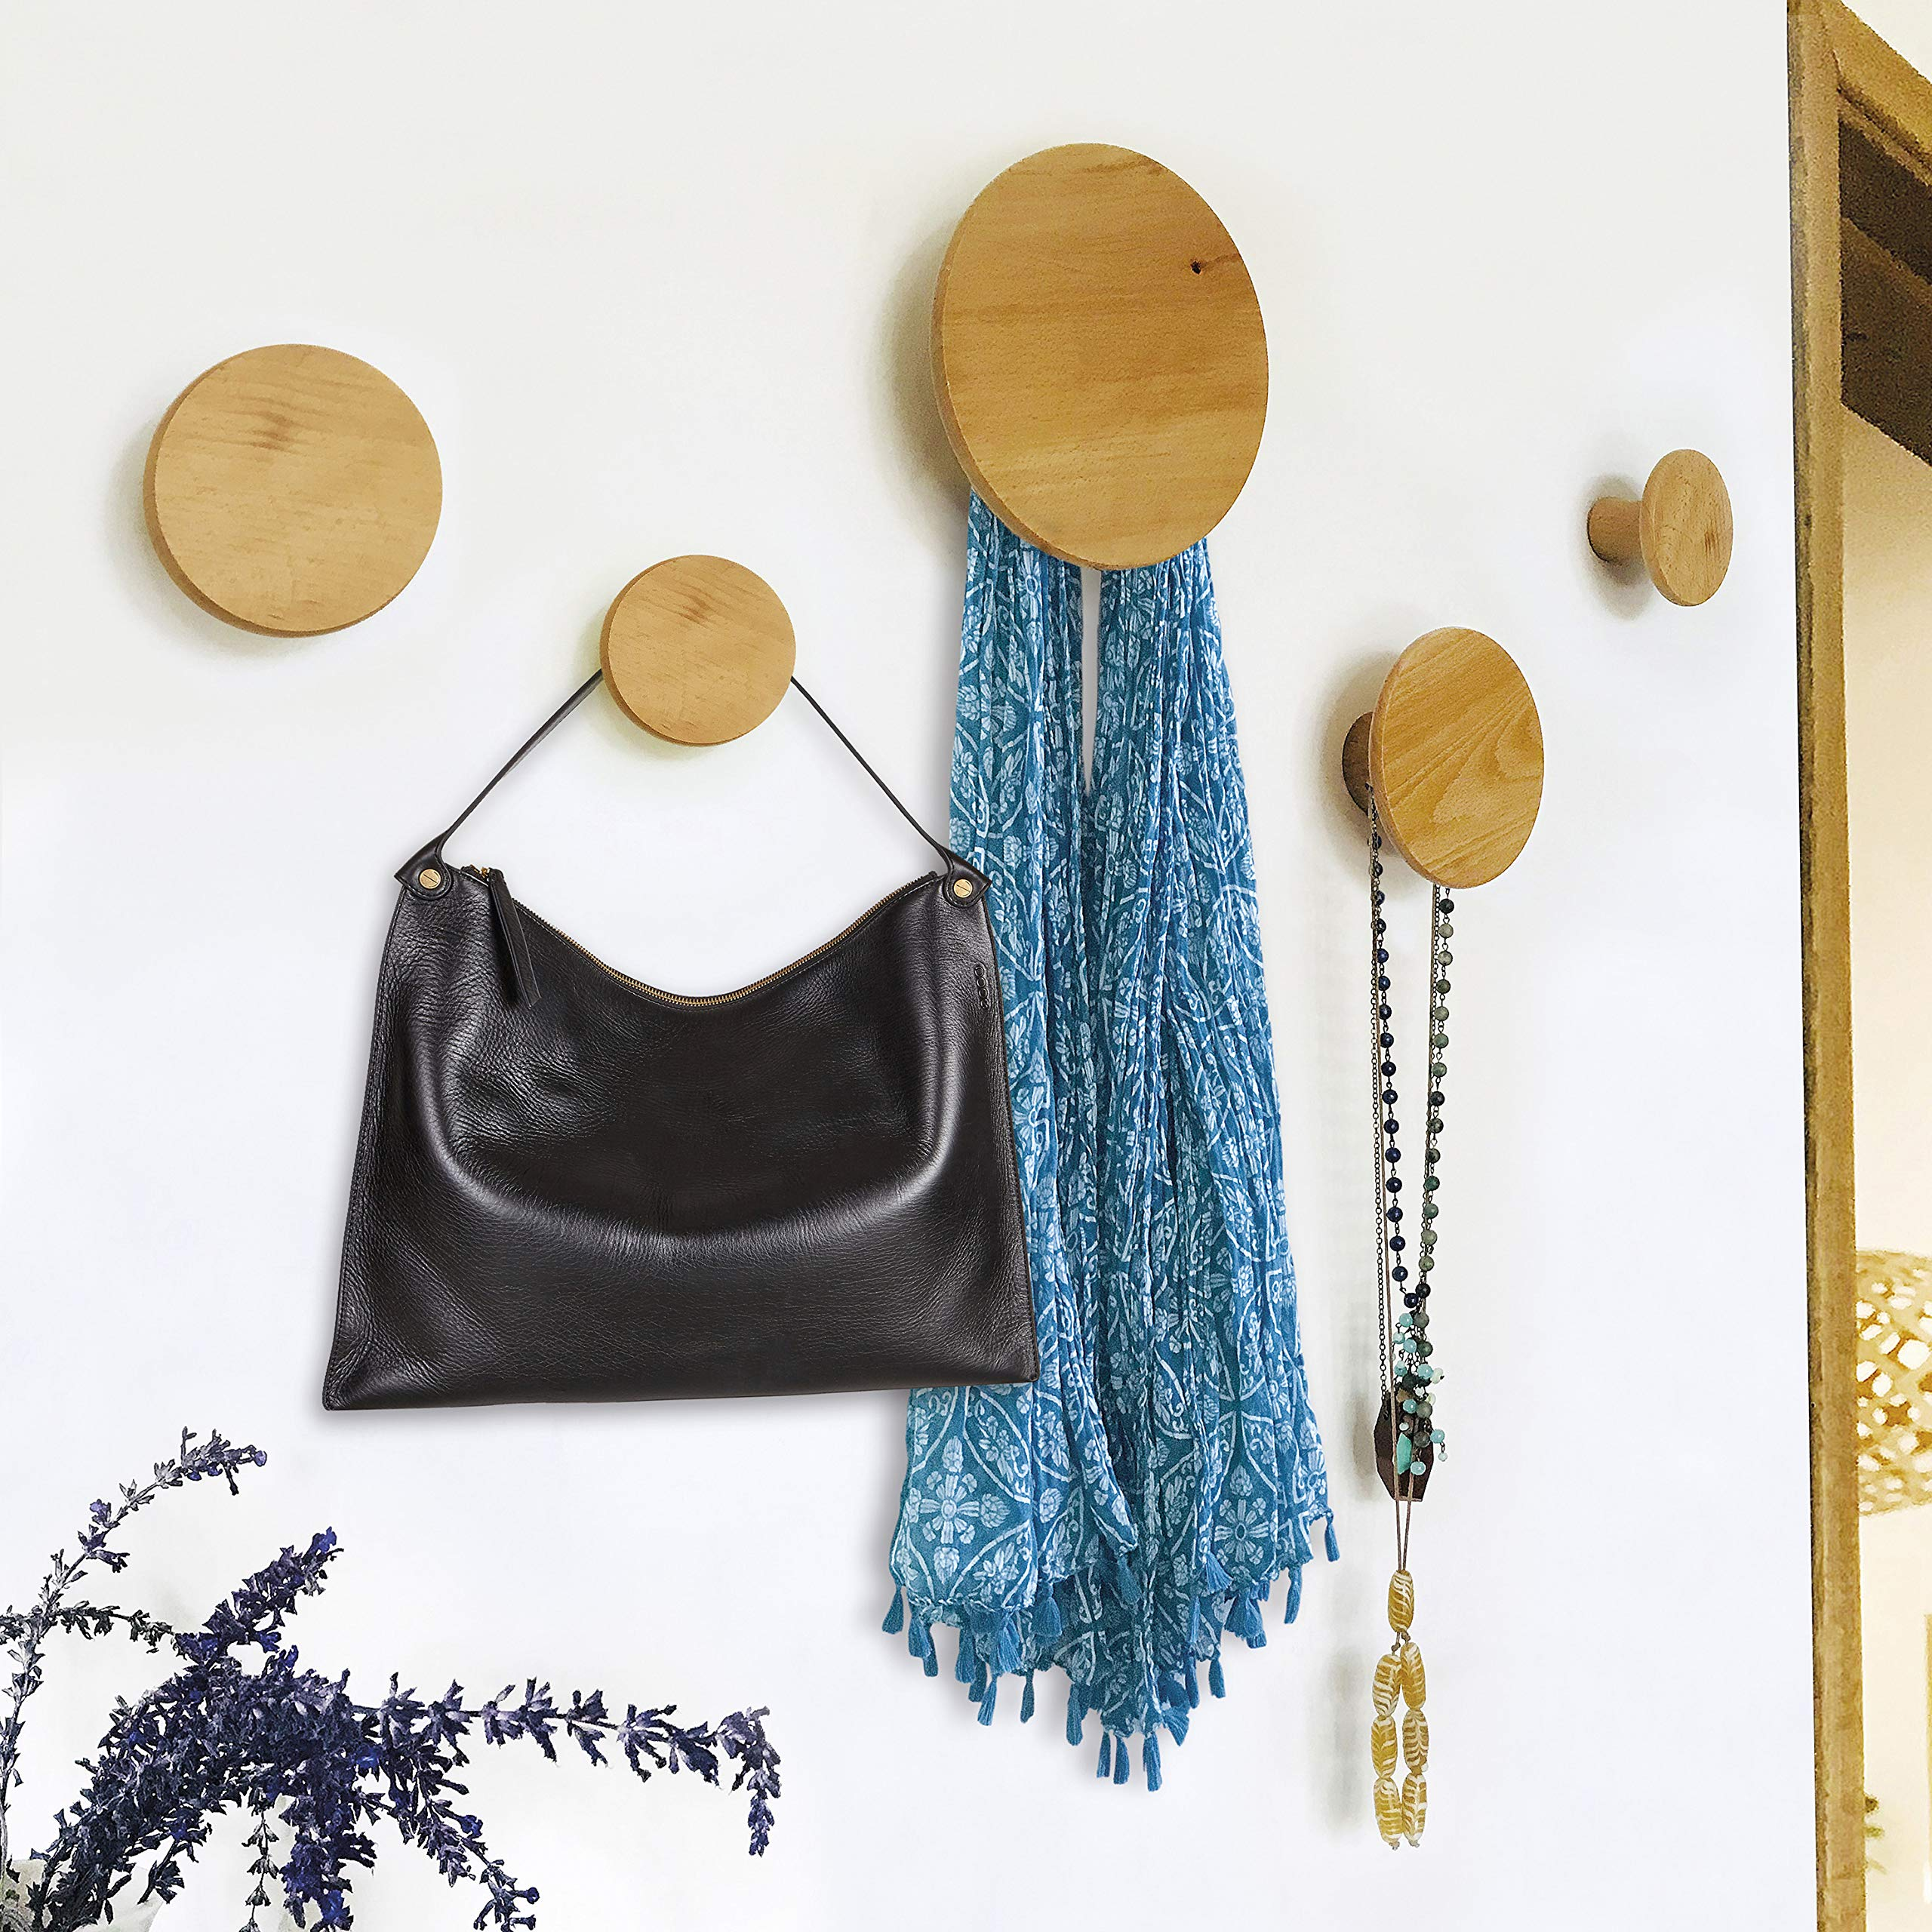 Wall Hooks, Coat Hooks Wall Mounted, Wood Hooks 5-Piece Set, Organizer Hangers, Dot Hooks, Wall Decorations for Hanging Scarves, Bags, Clothes and More. by The Bower Home Traders